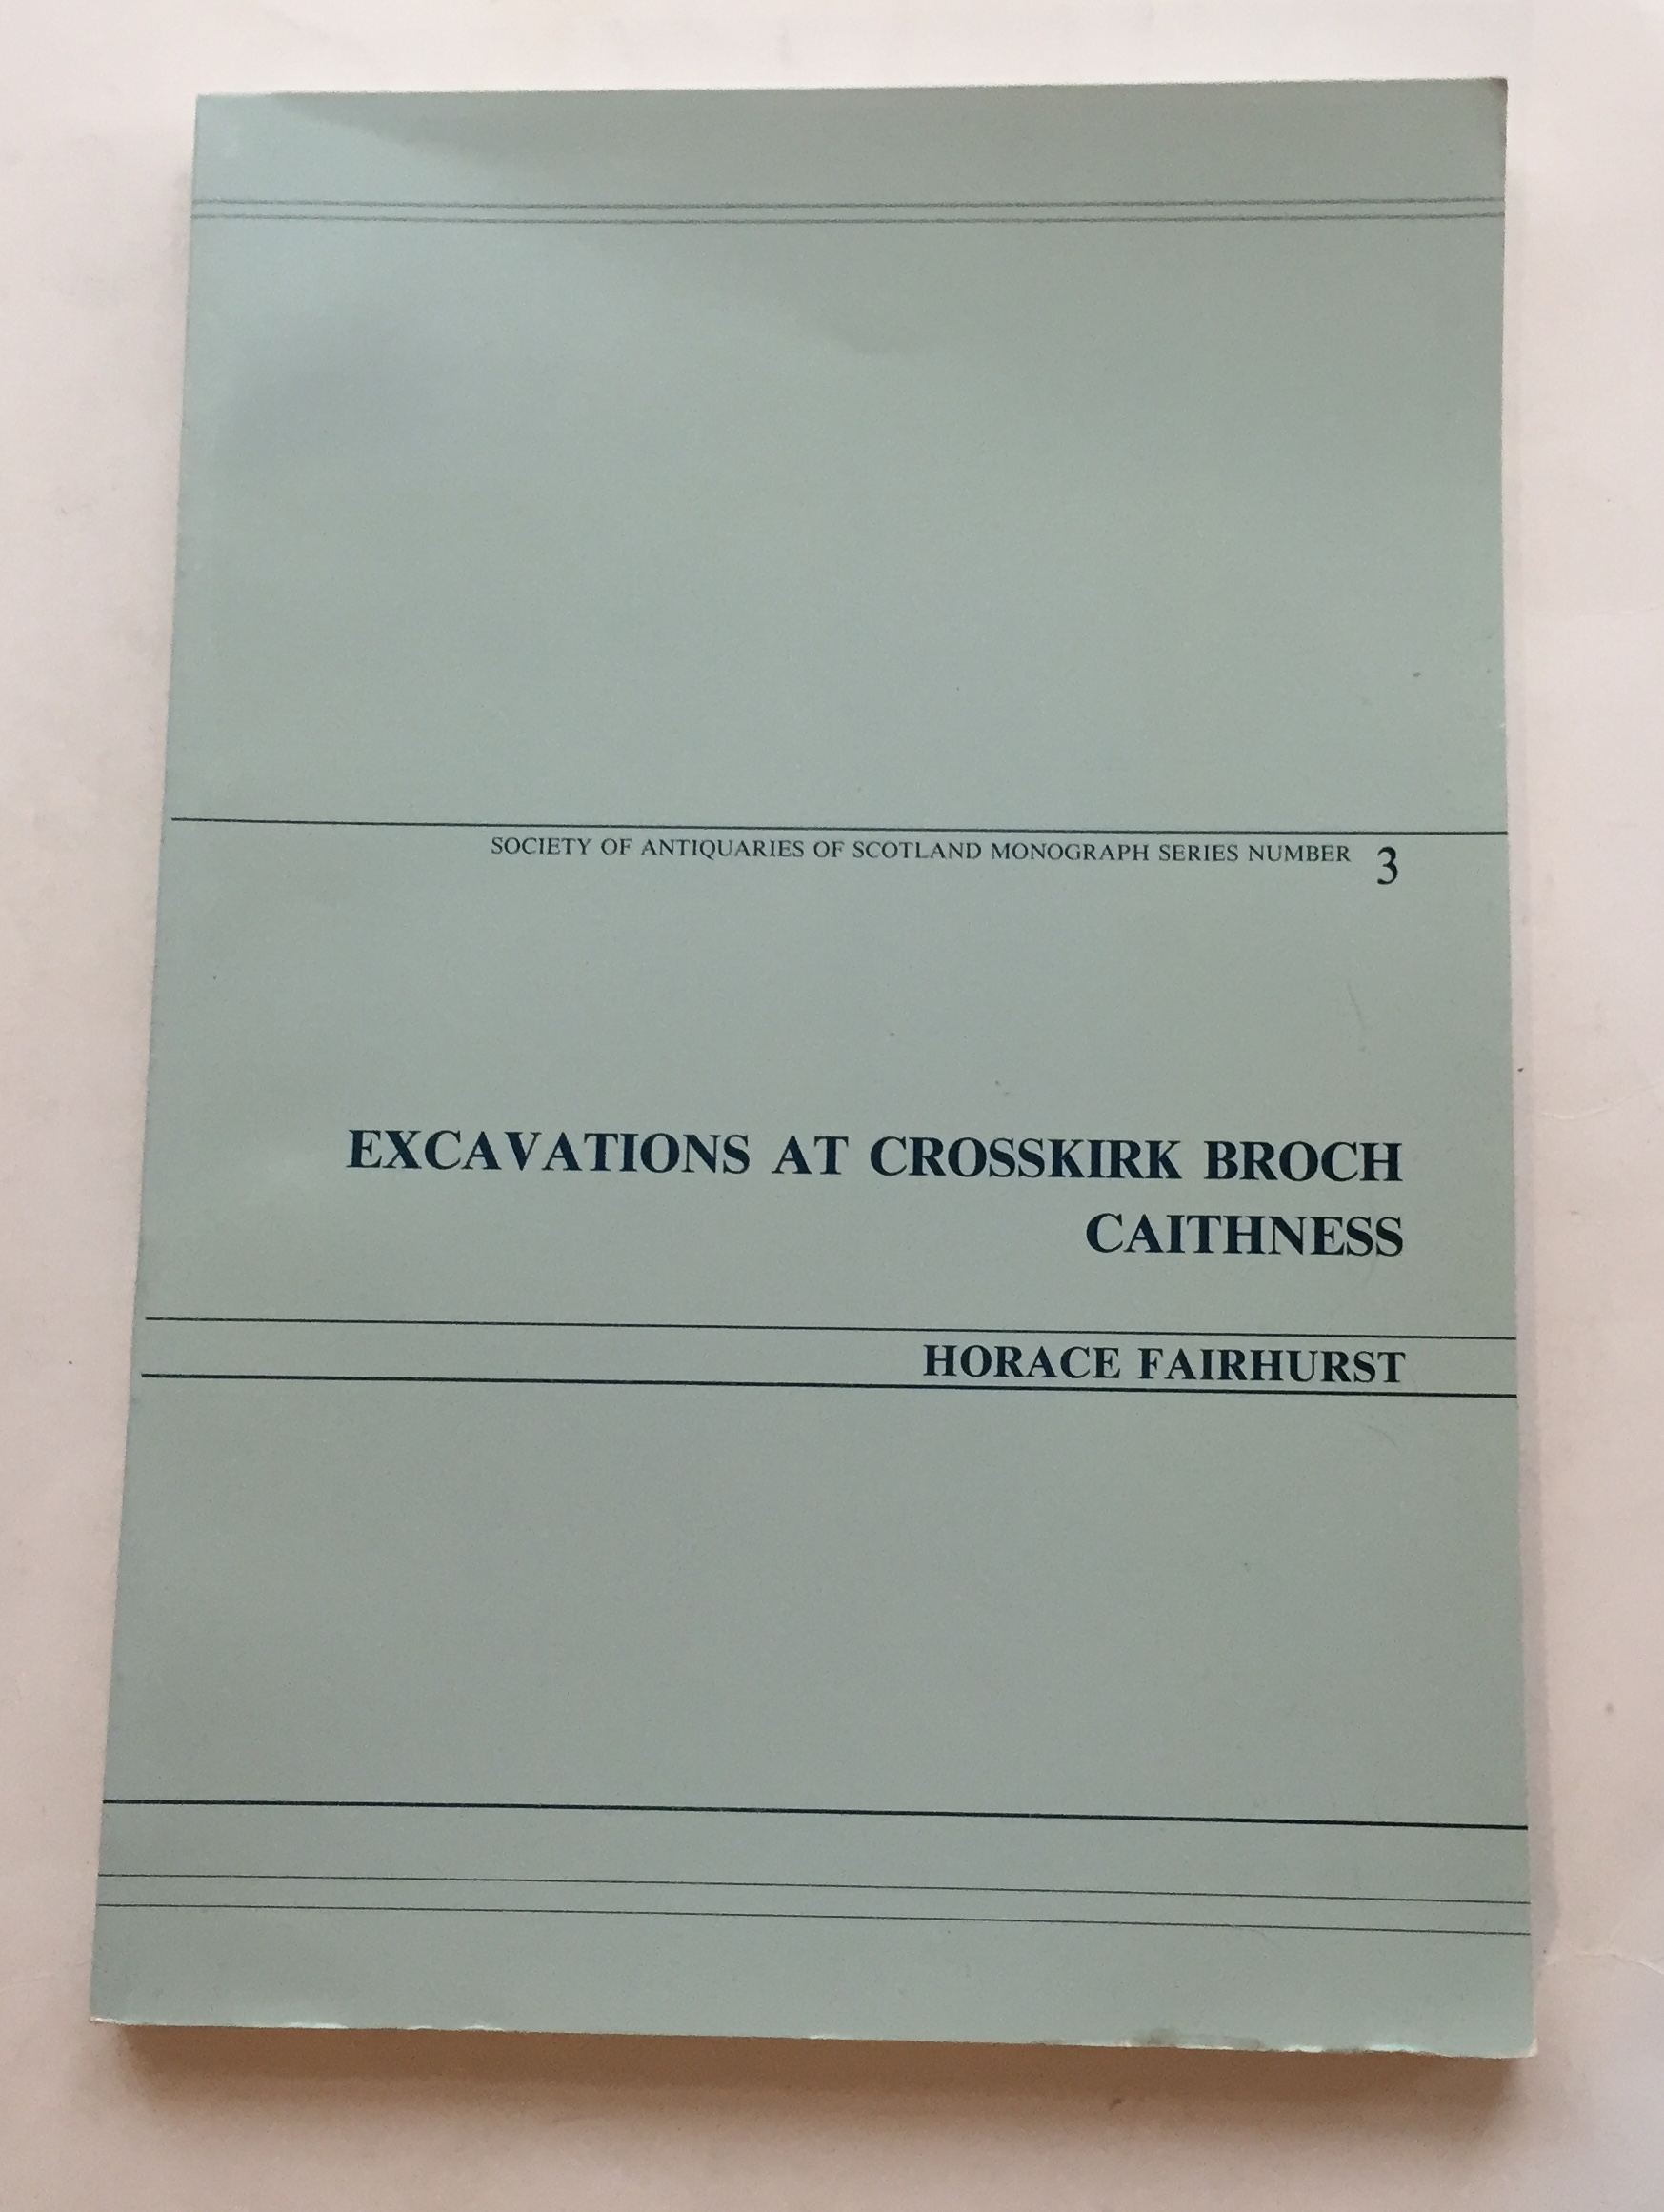 EXCAVATIONS AT CROSSKIRK BROCH, CAITHNESS :(Society of Antiquaries of Scotland Monograph Series Number 3)